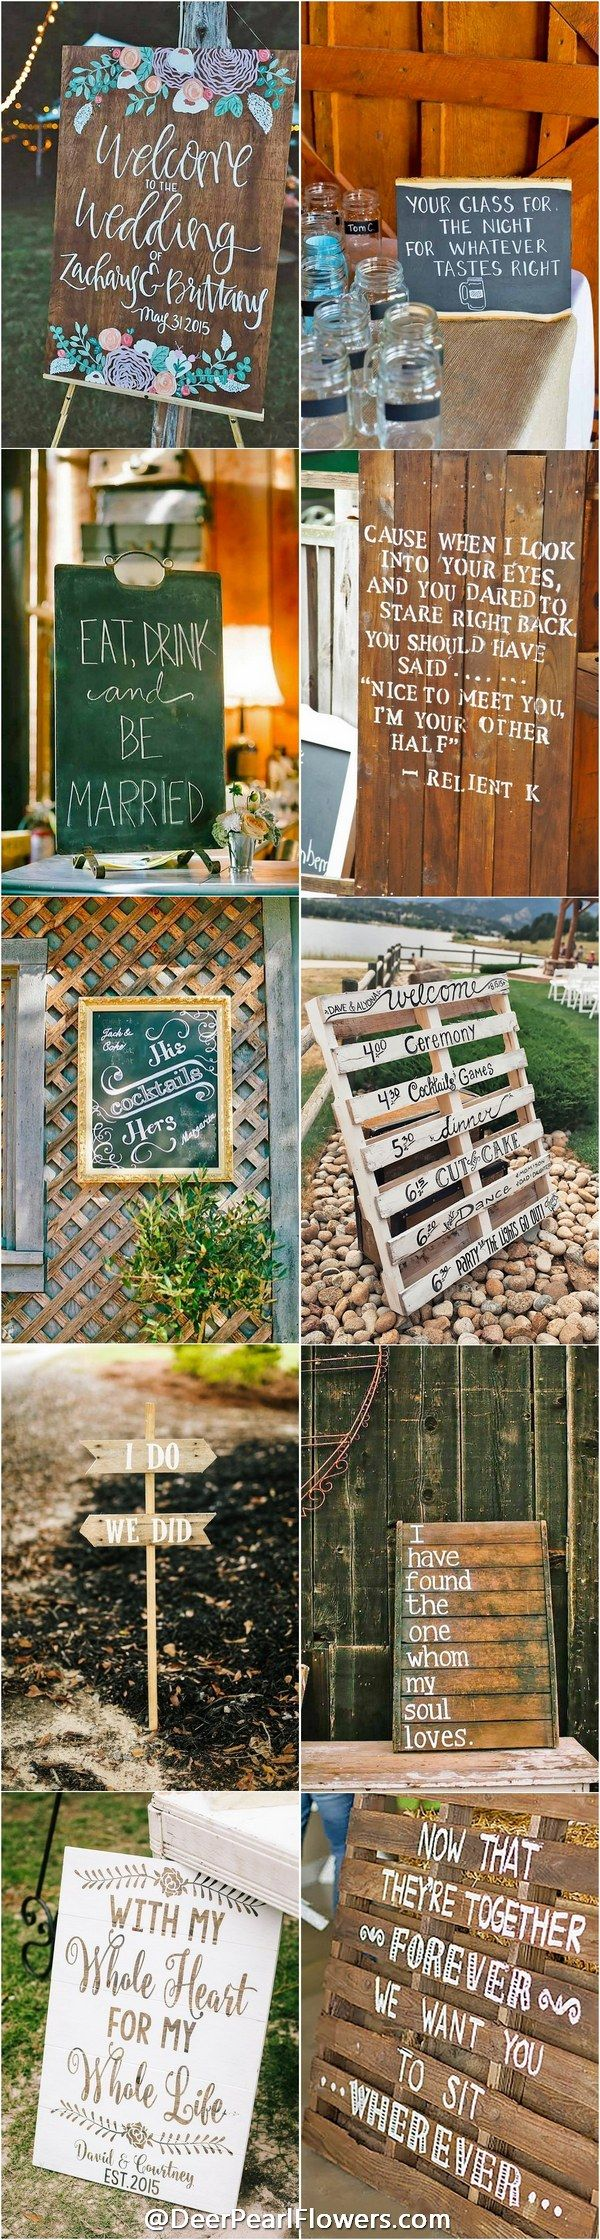 Rustic country wedding signs / http://www.deerpearlflowers.com/30-rustic-wedding-signs-ideas-for-weddings/